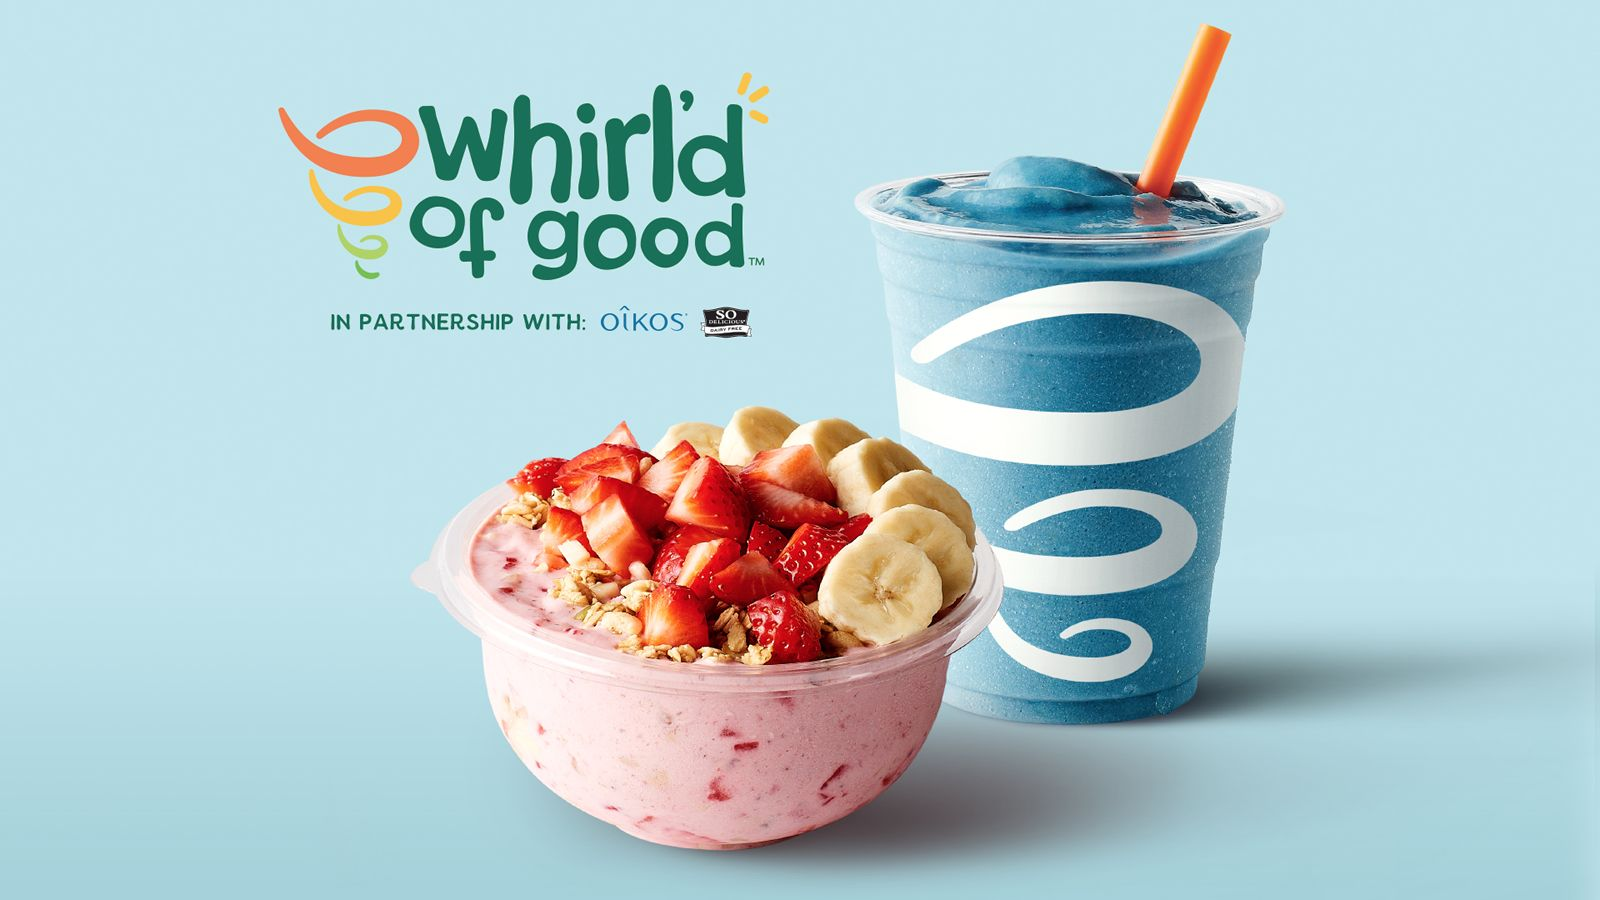 Jamba Launches Whirl'd Of Good Buy One, Give One Program to Honor Frontline Heroes